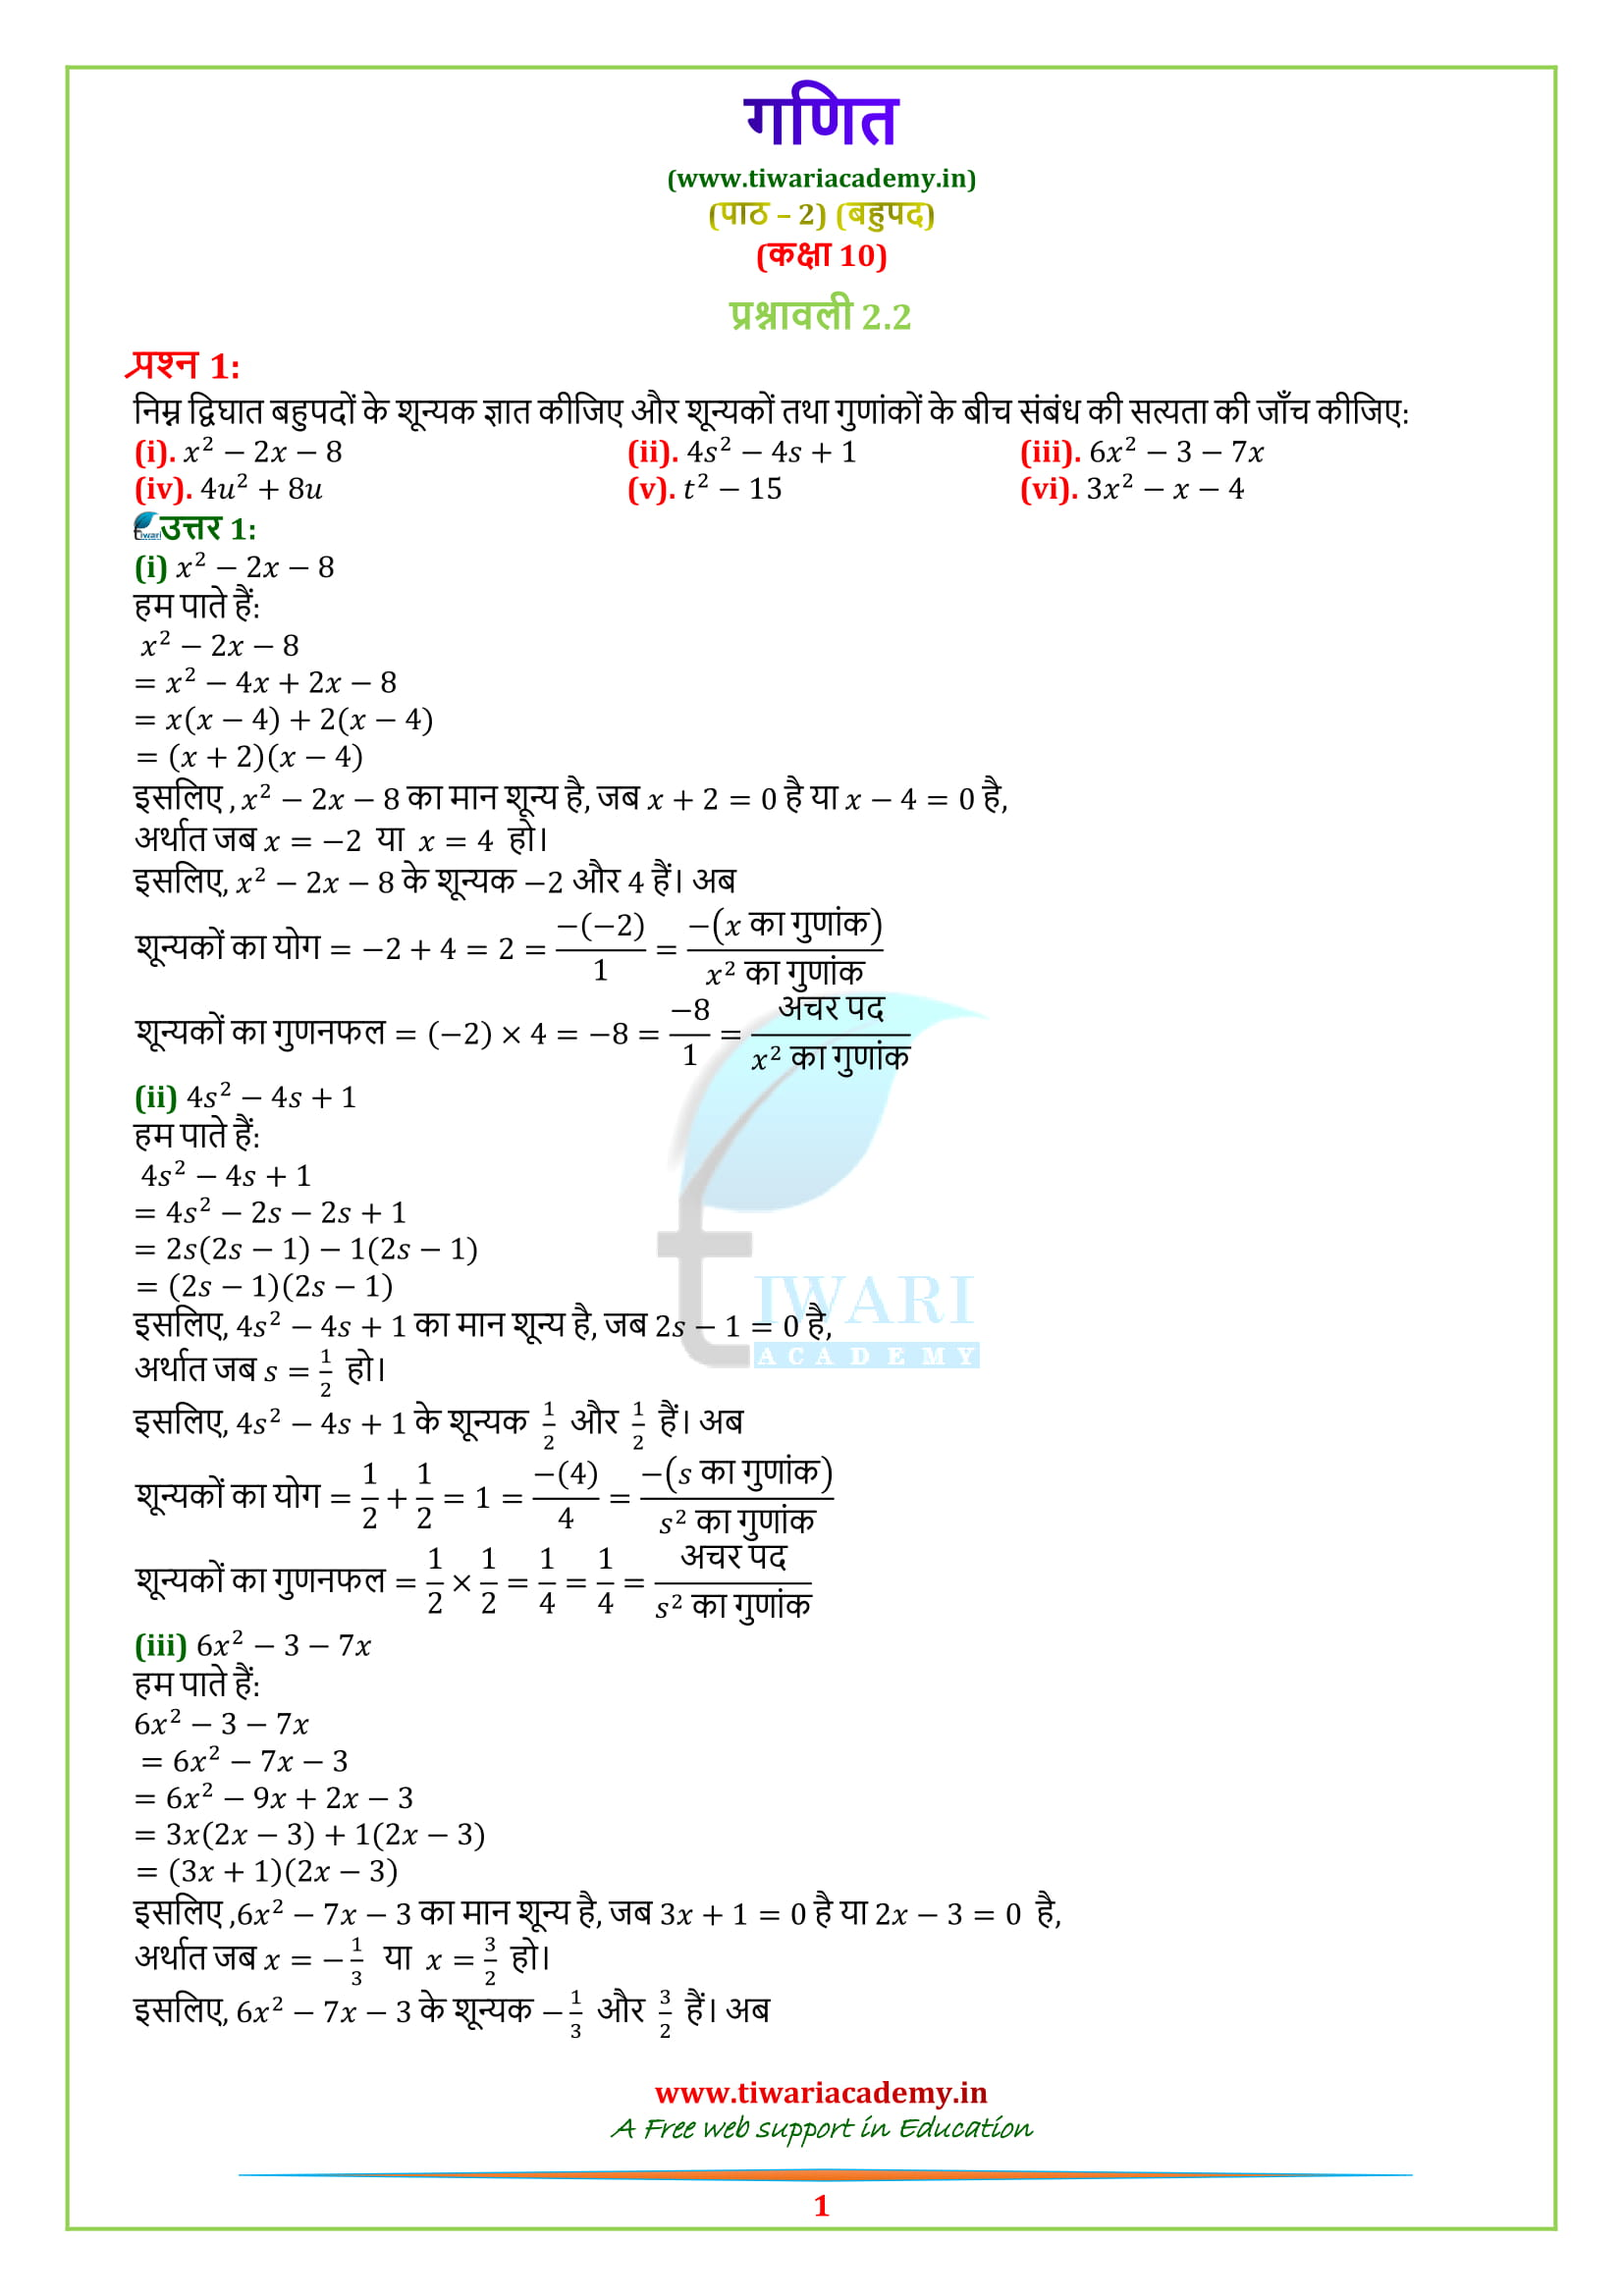 NCERT Solutions for class 10 maths Exercise 2.2 in Hindi